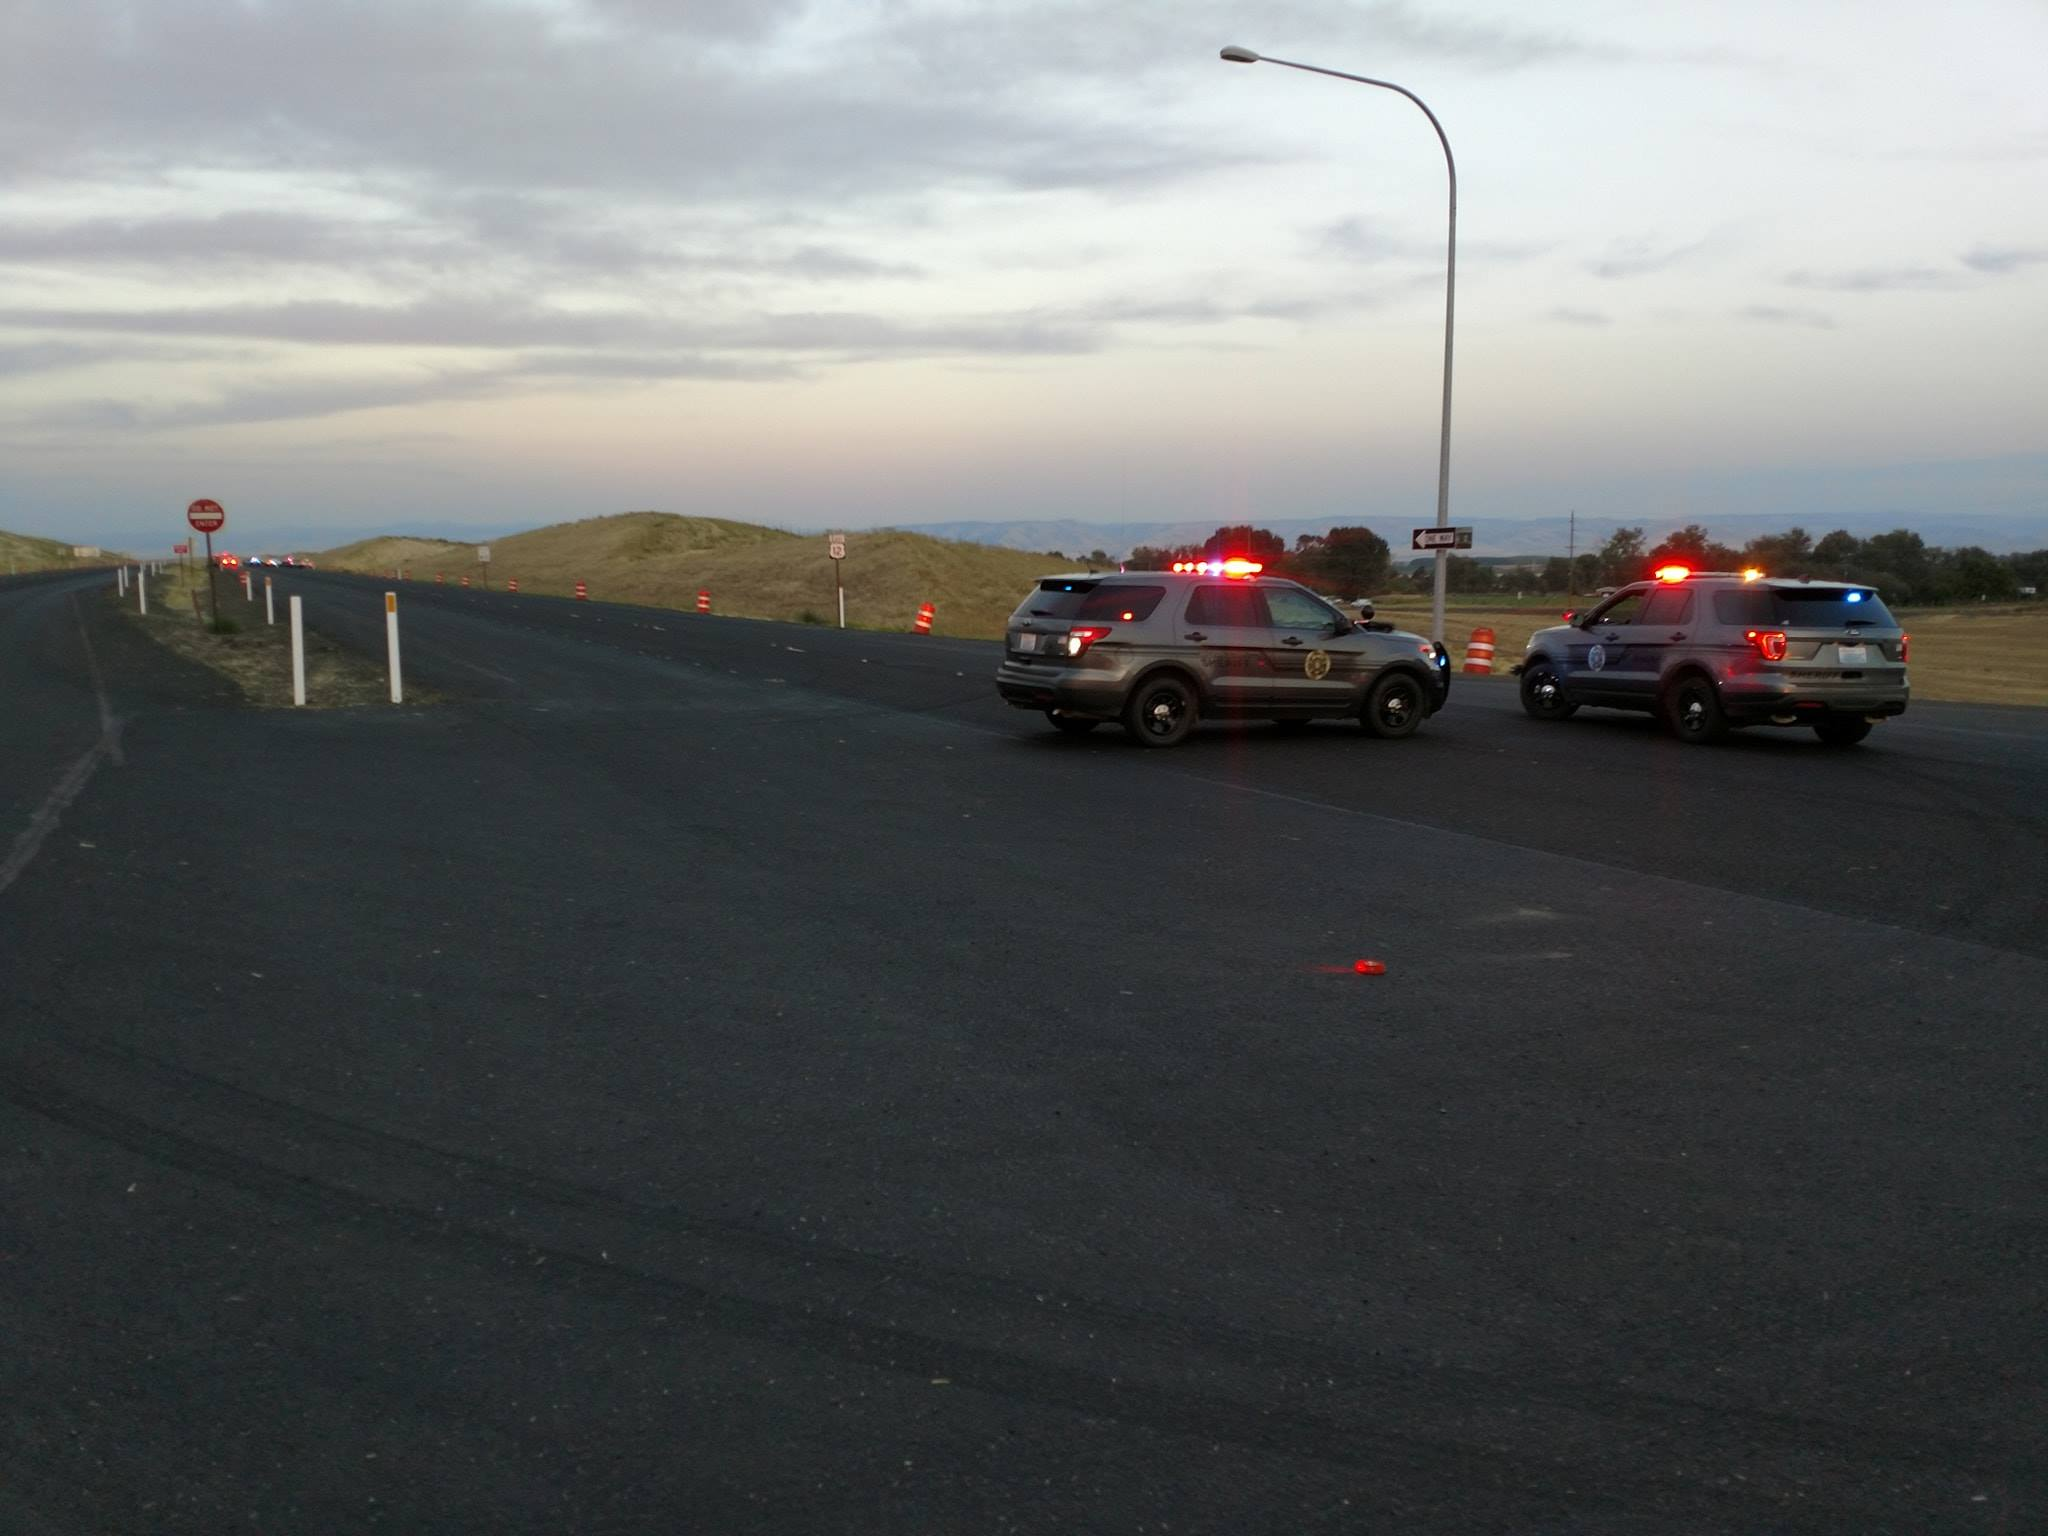 Walla Walla man killed in serious single-vehicle accident